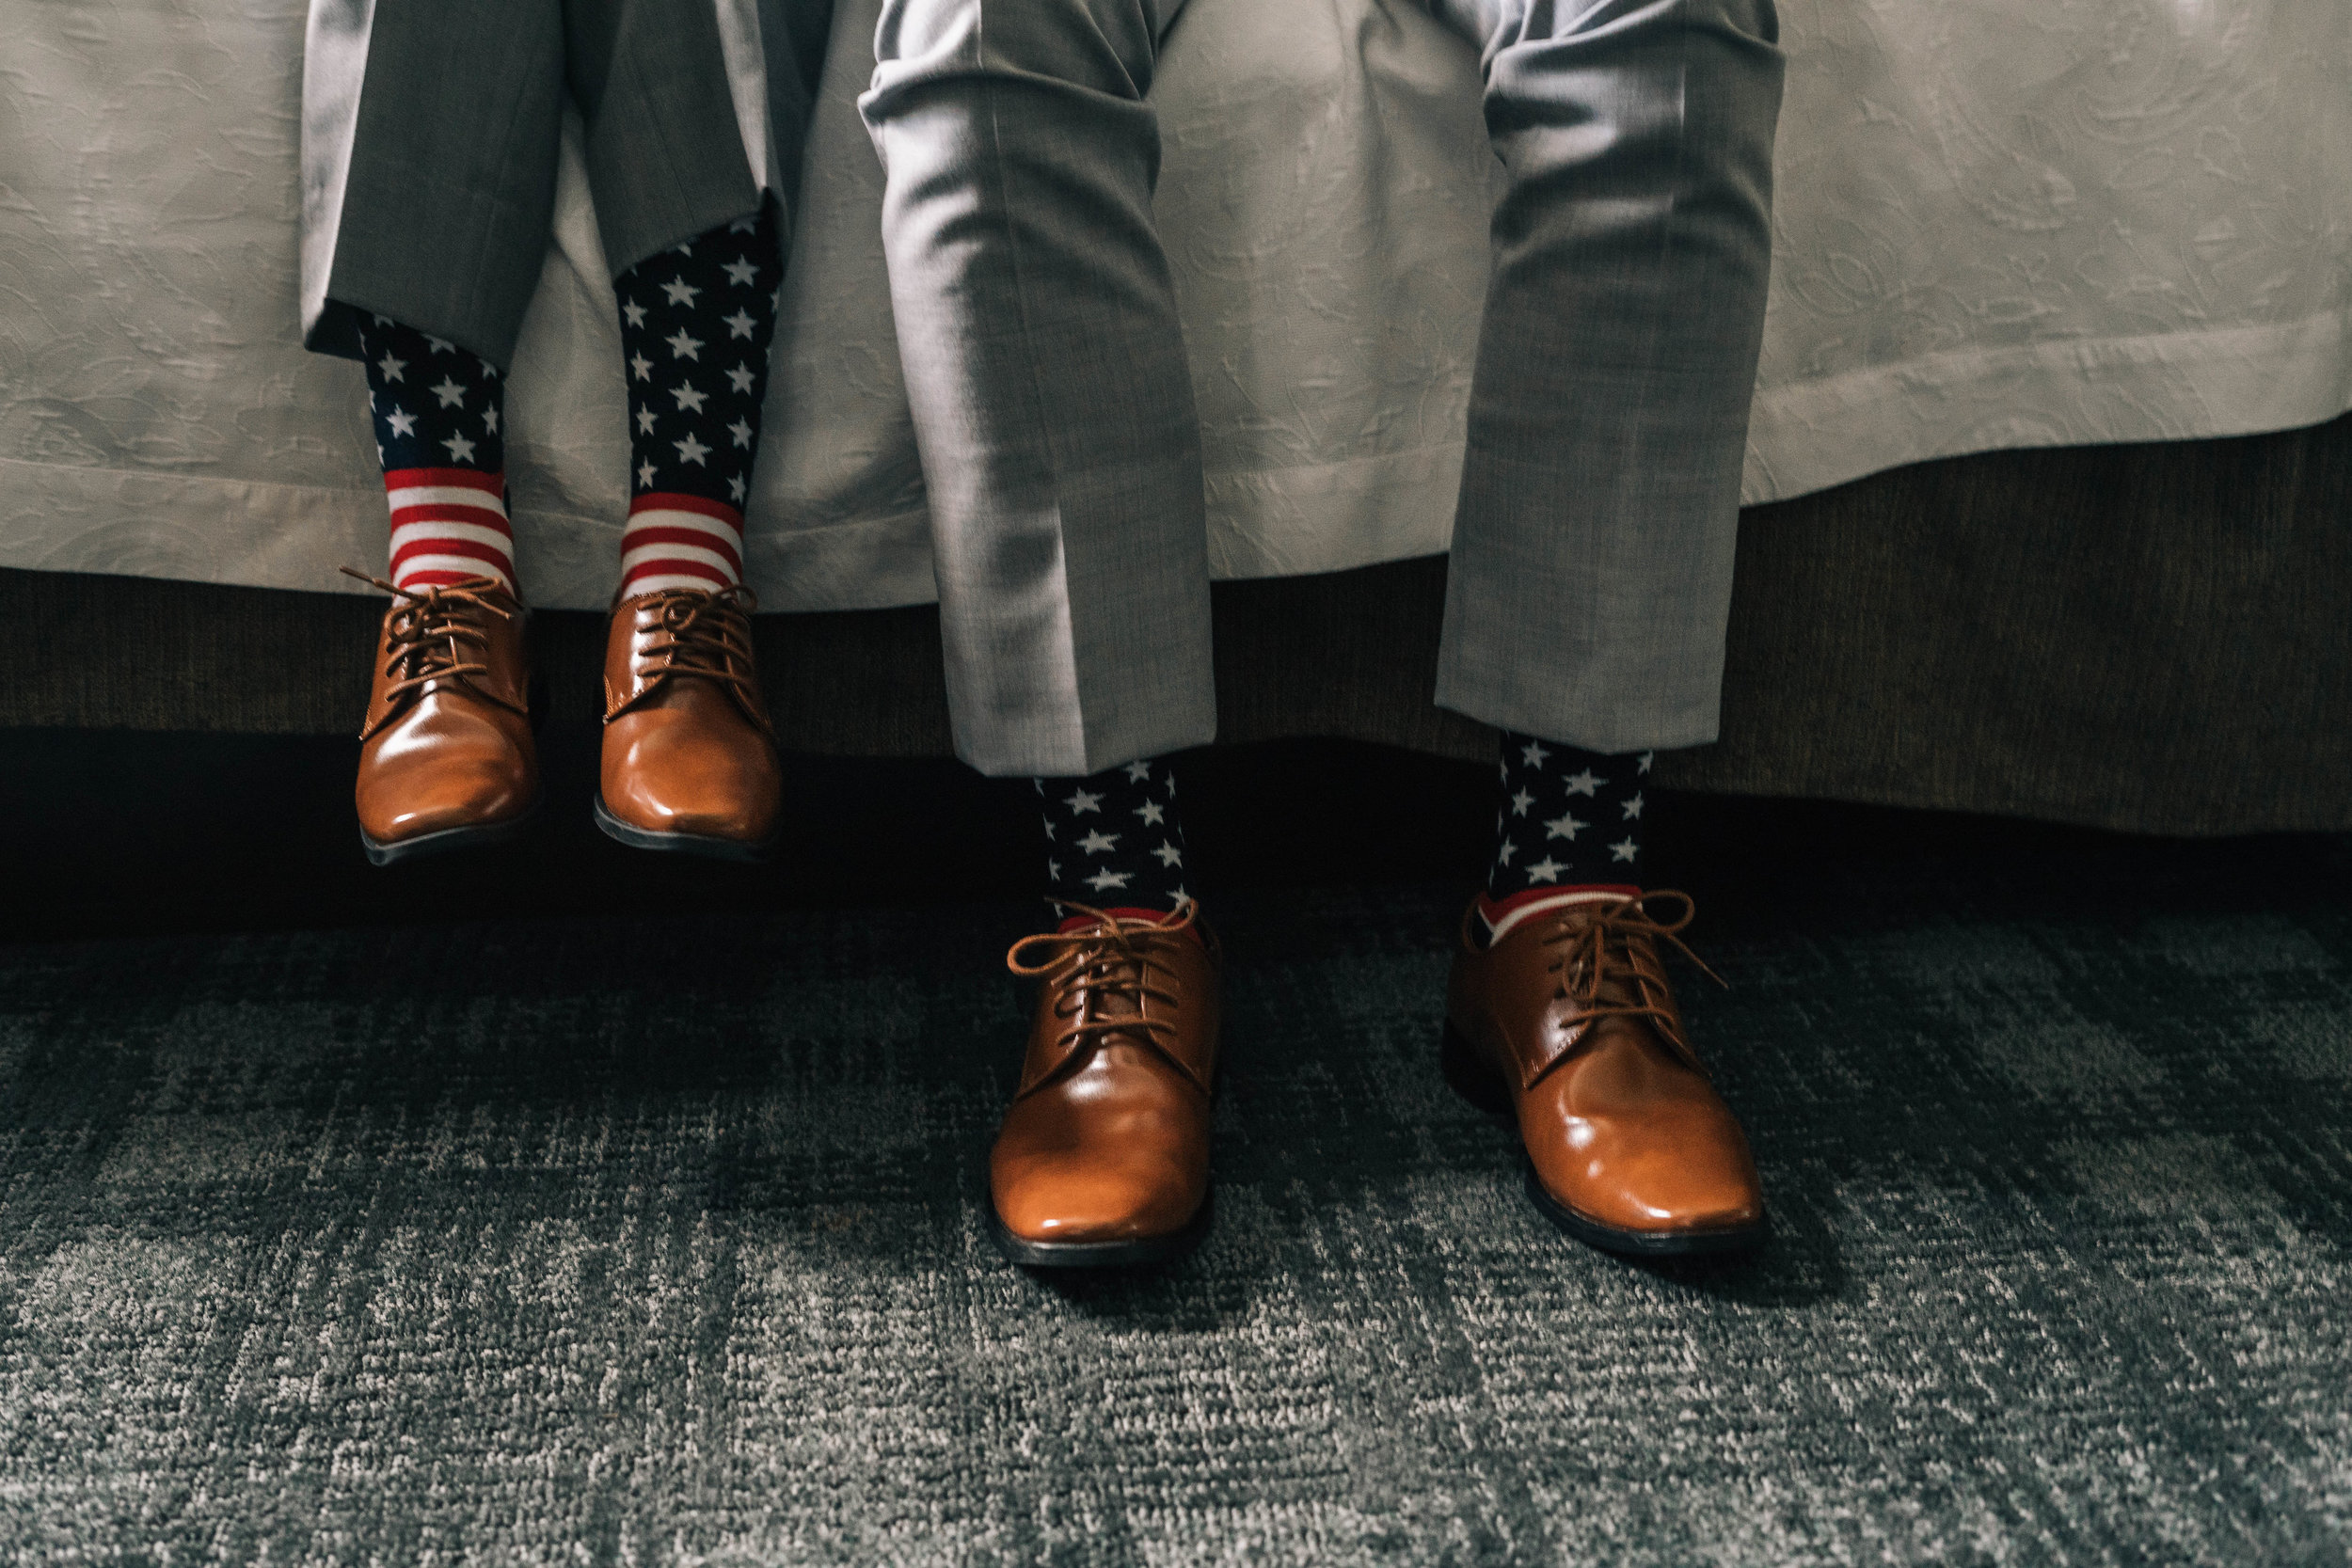 United States Socks Groom Is In The Armed Forces With Son